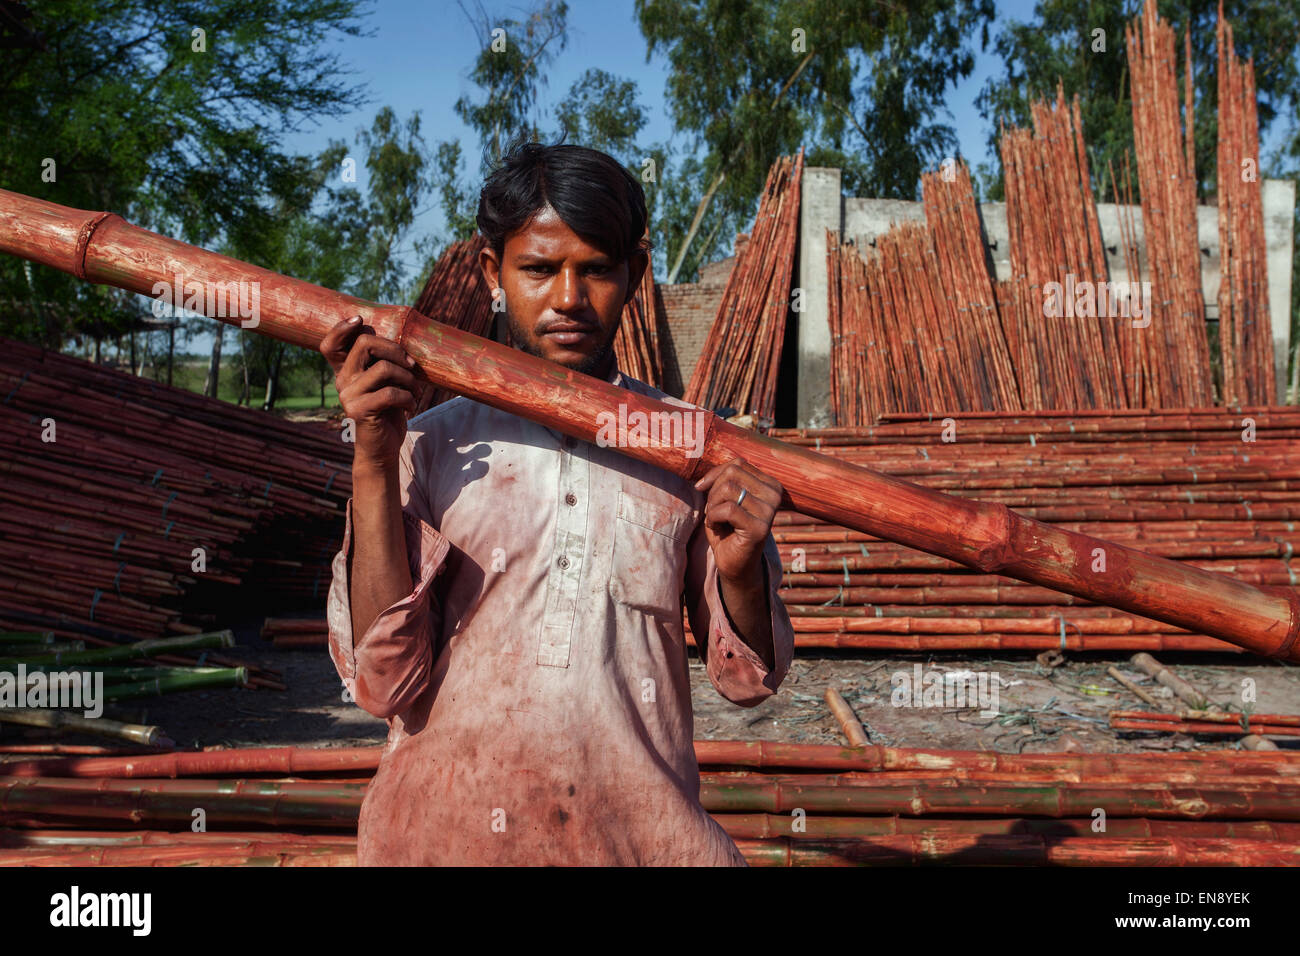 A laborer holds a bamboo after painting it red in final stages before shipping in a village in Pakistan - Stock Image